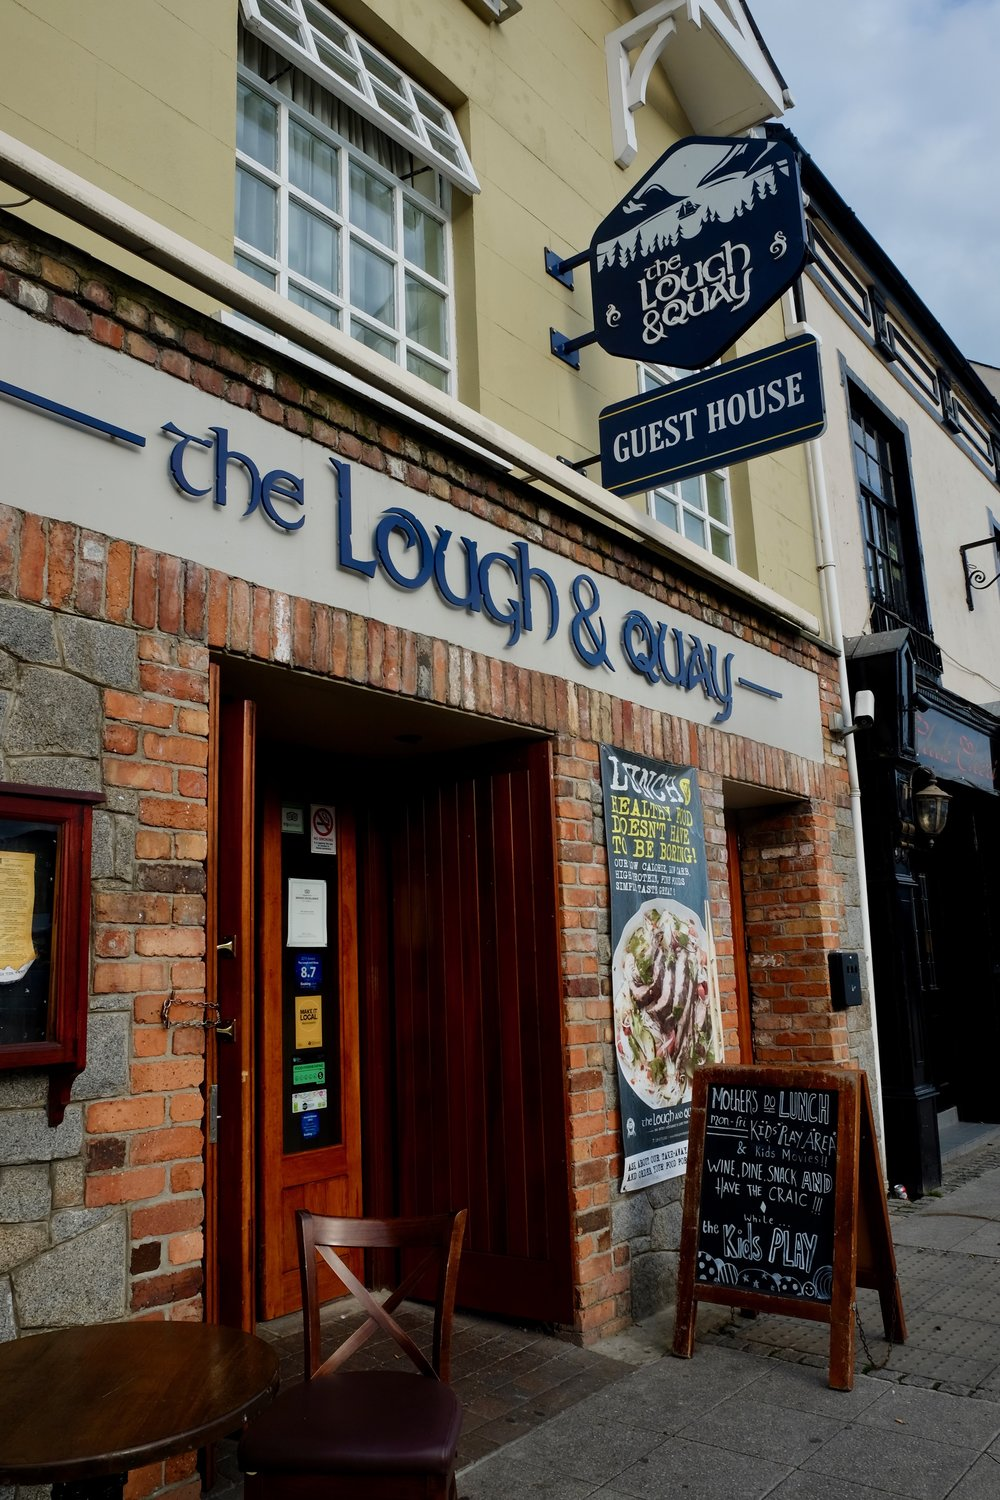 The Lough and Quay, 1-3 Marine Parade, Warrenpoint BT34 3NB, +44 (0) 28 4175 2082, info@theloughandquay.com